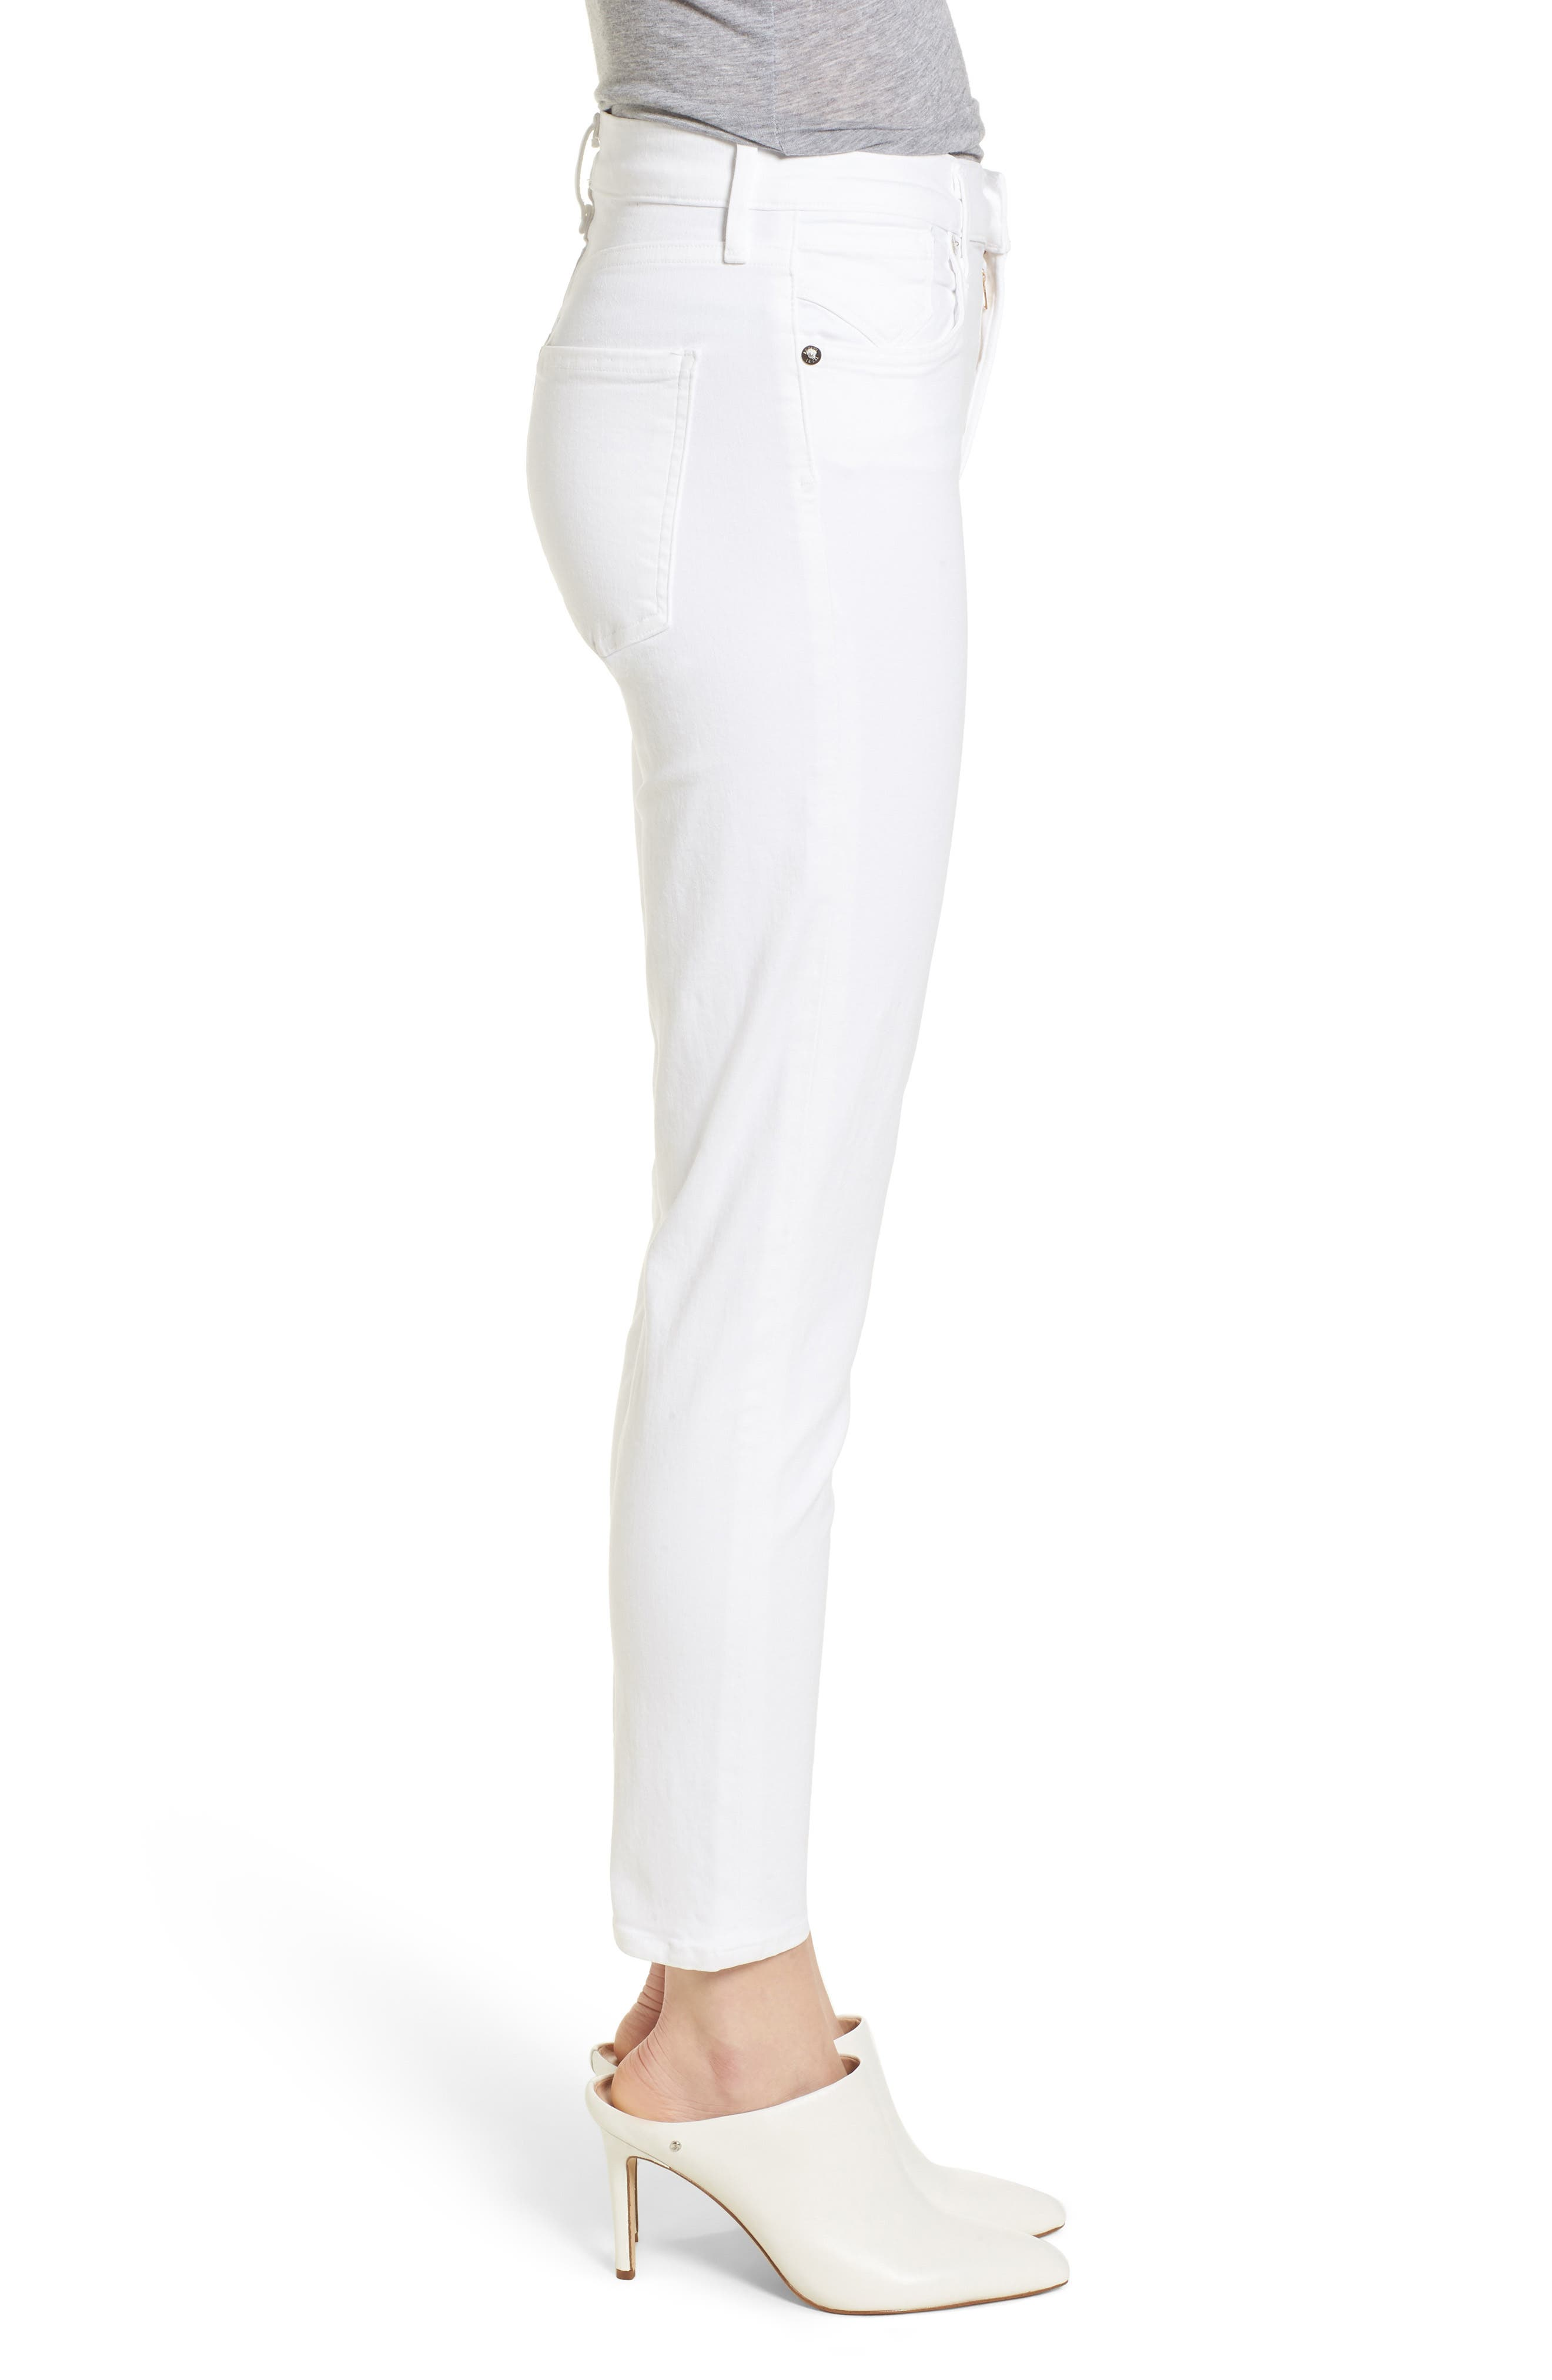 Sophie High Waist Ankle Skinny Jeans,                             Alternate thumbnail 3, color,                             VIXEN